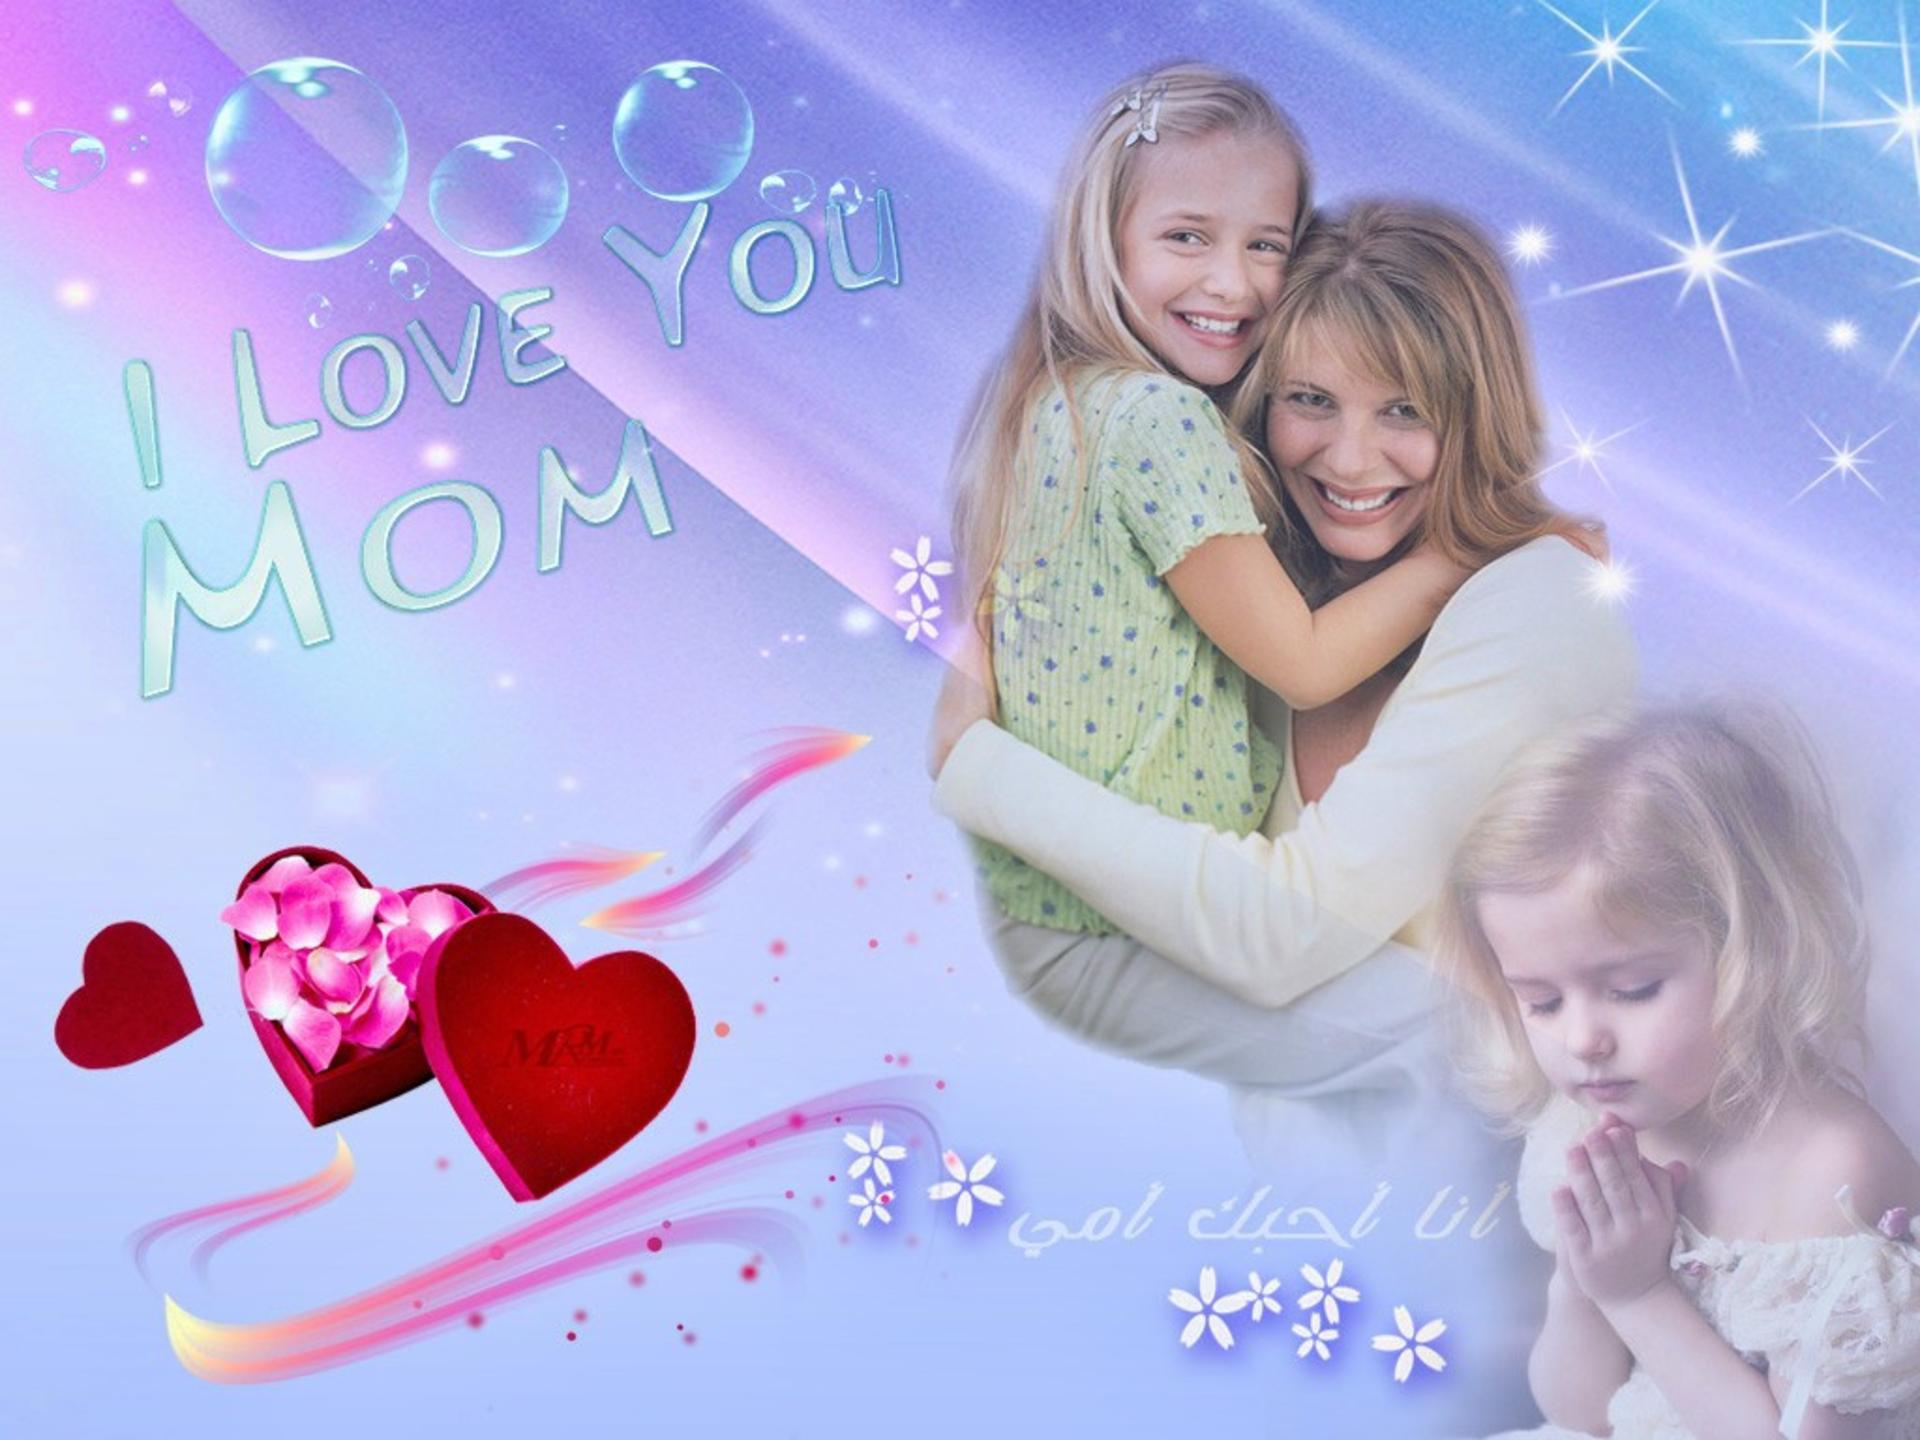 Love You Mom Wallpapers Wallpaper Cave